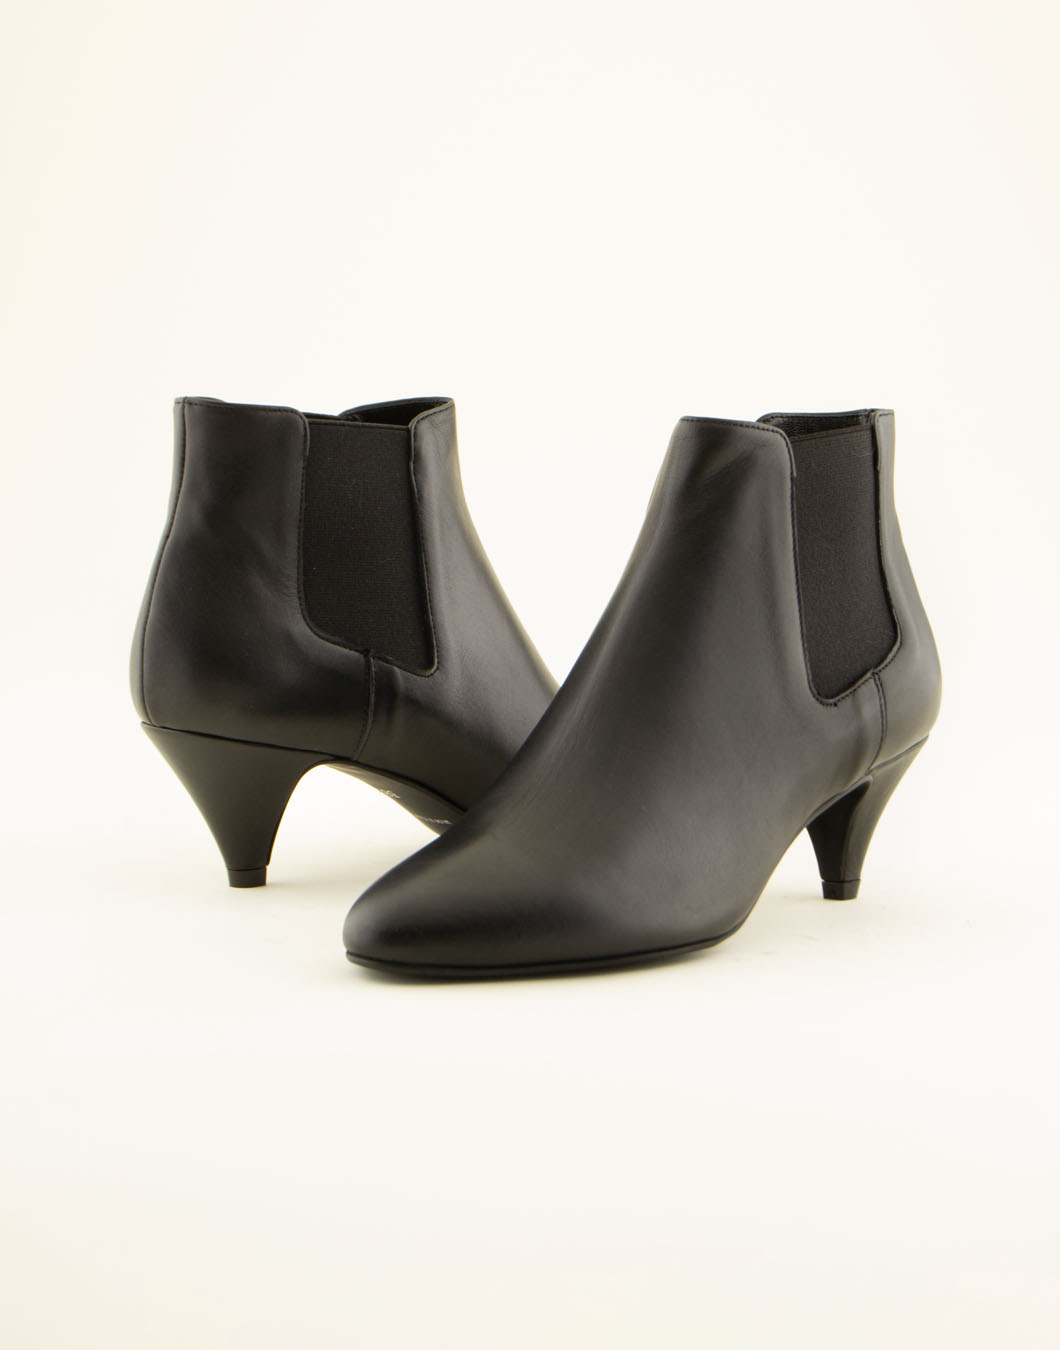 Leather ankle boots with 5cm heel – Art